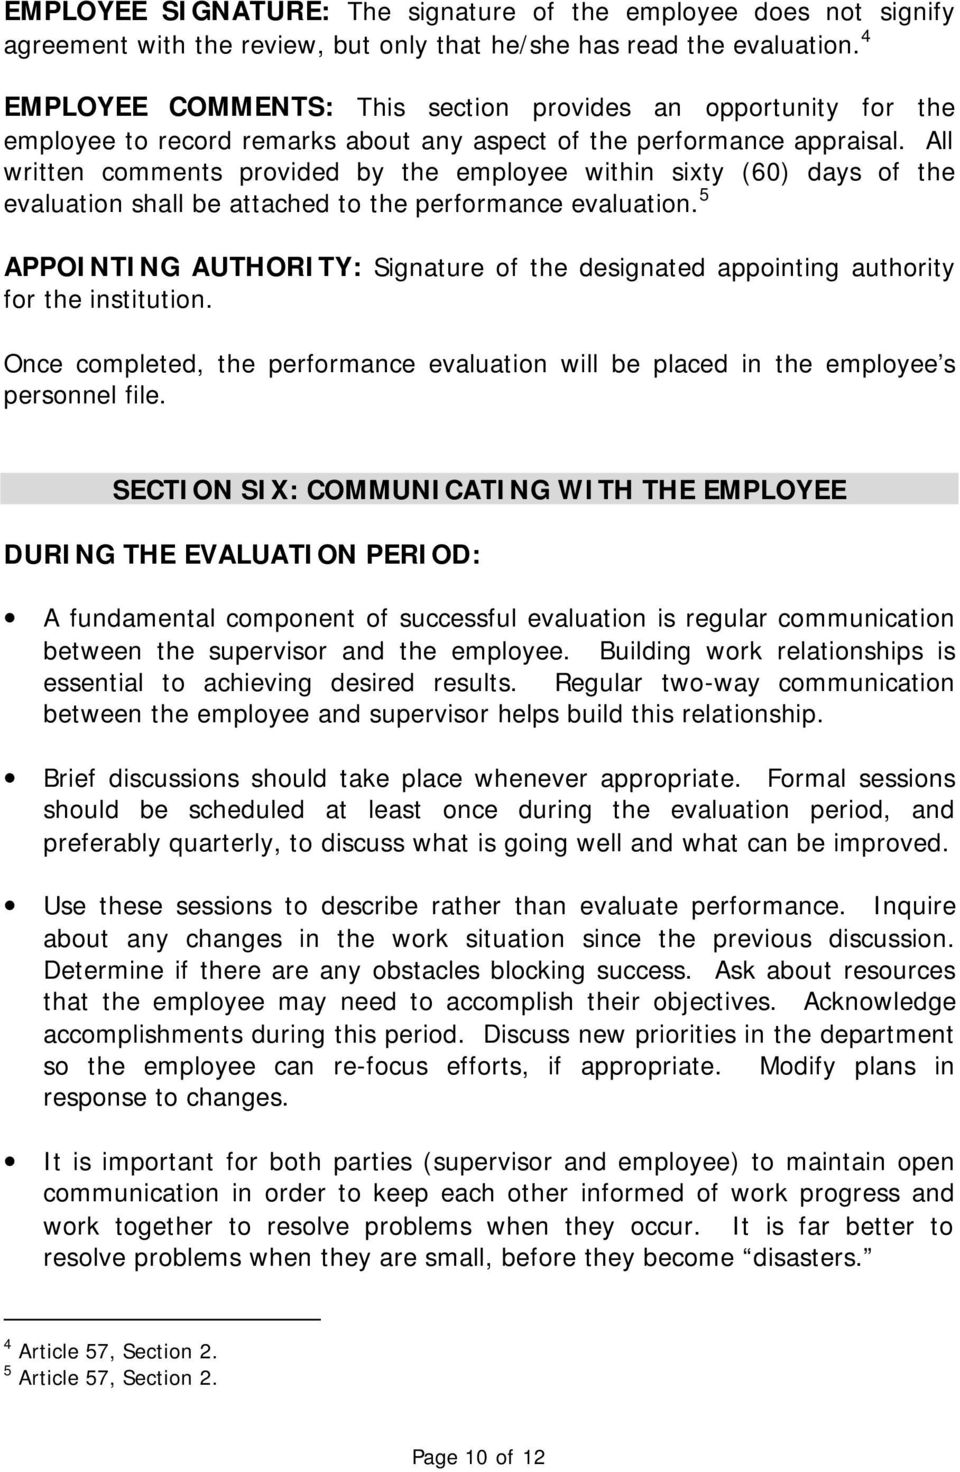 All written comments provided by the employee within sixty (60) days of the evaluation shall be attached to the performance evaluation.